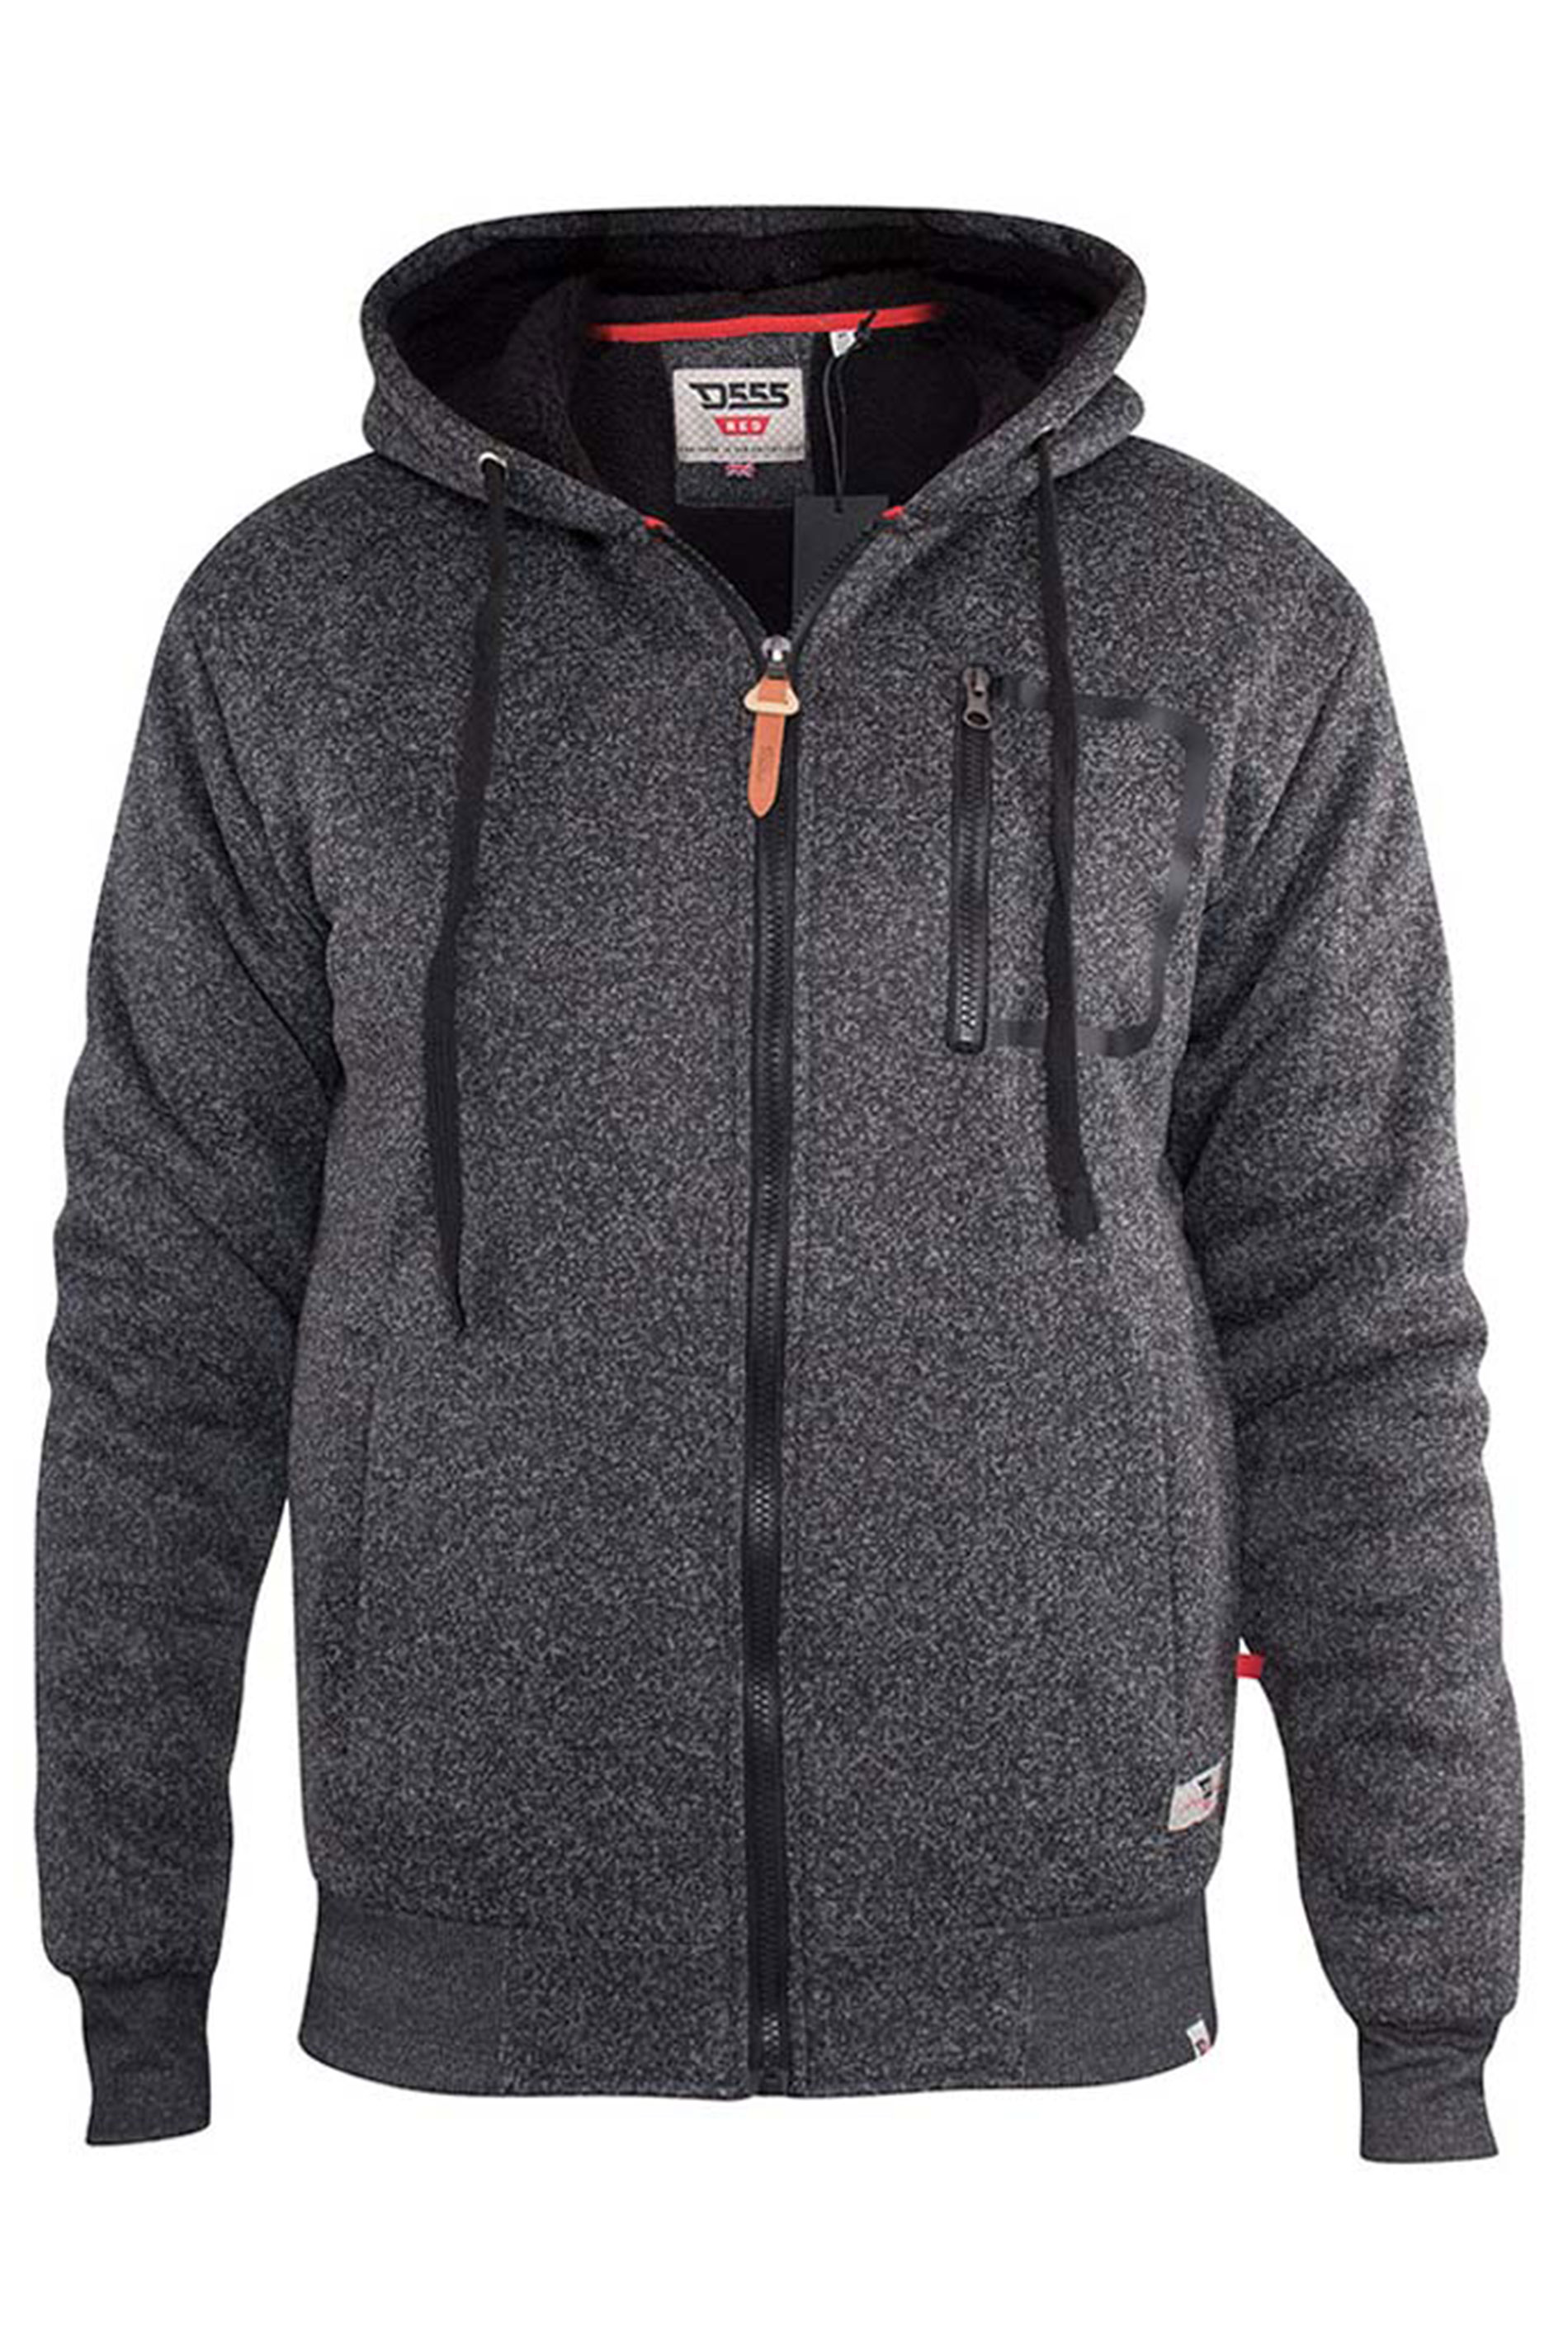 D555 Black Sherpa Zip Through Jacket